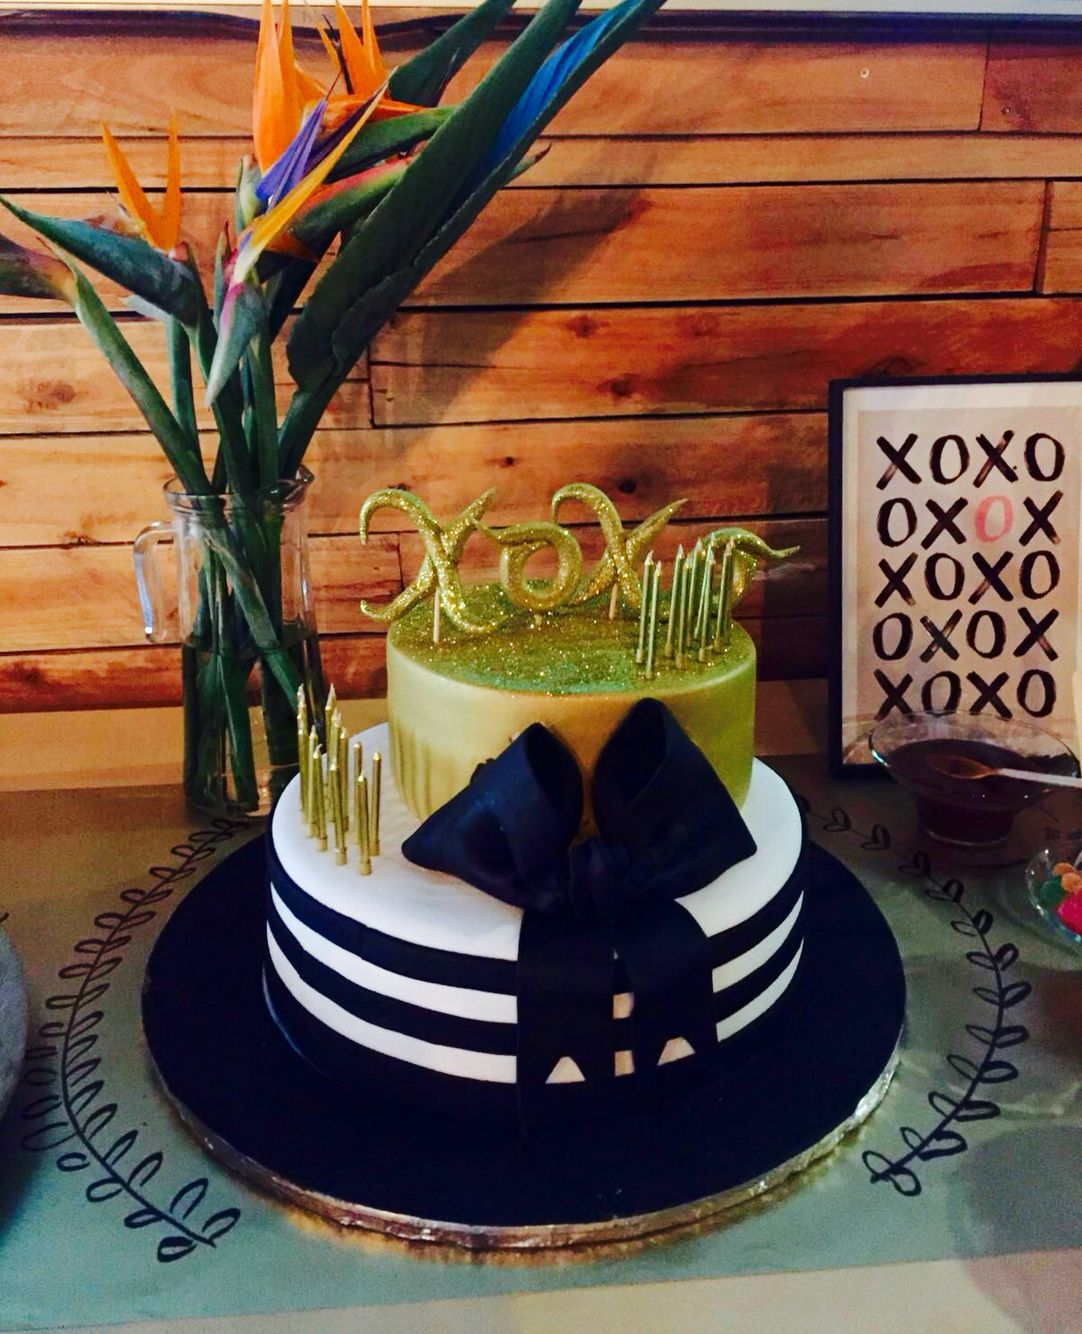 Mono chrome xoxo birthday cake Gossip Girl inspired party Gossip